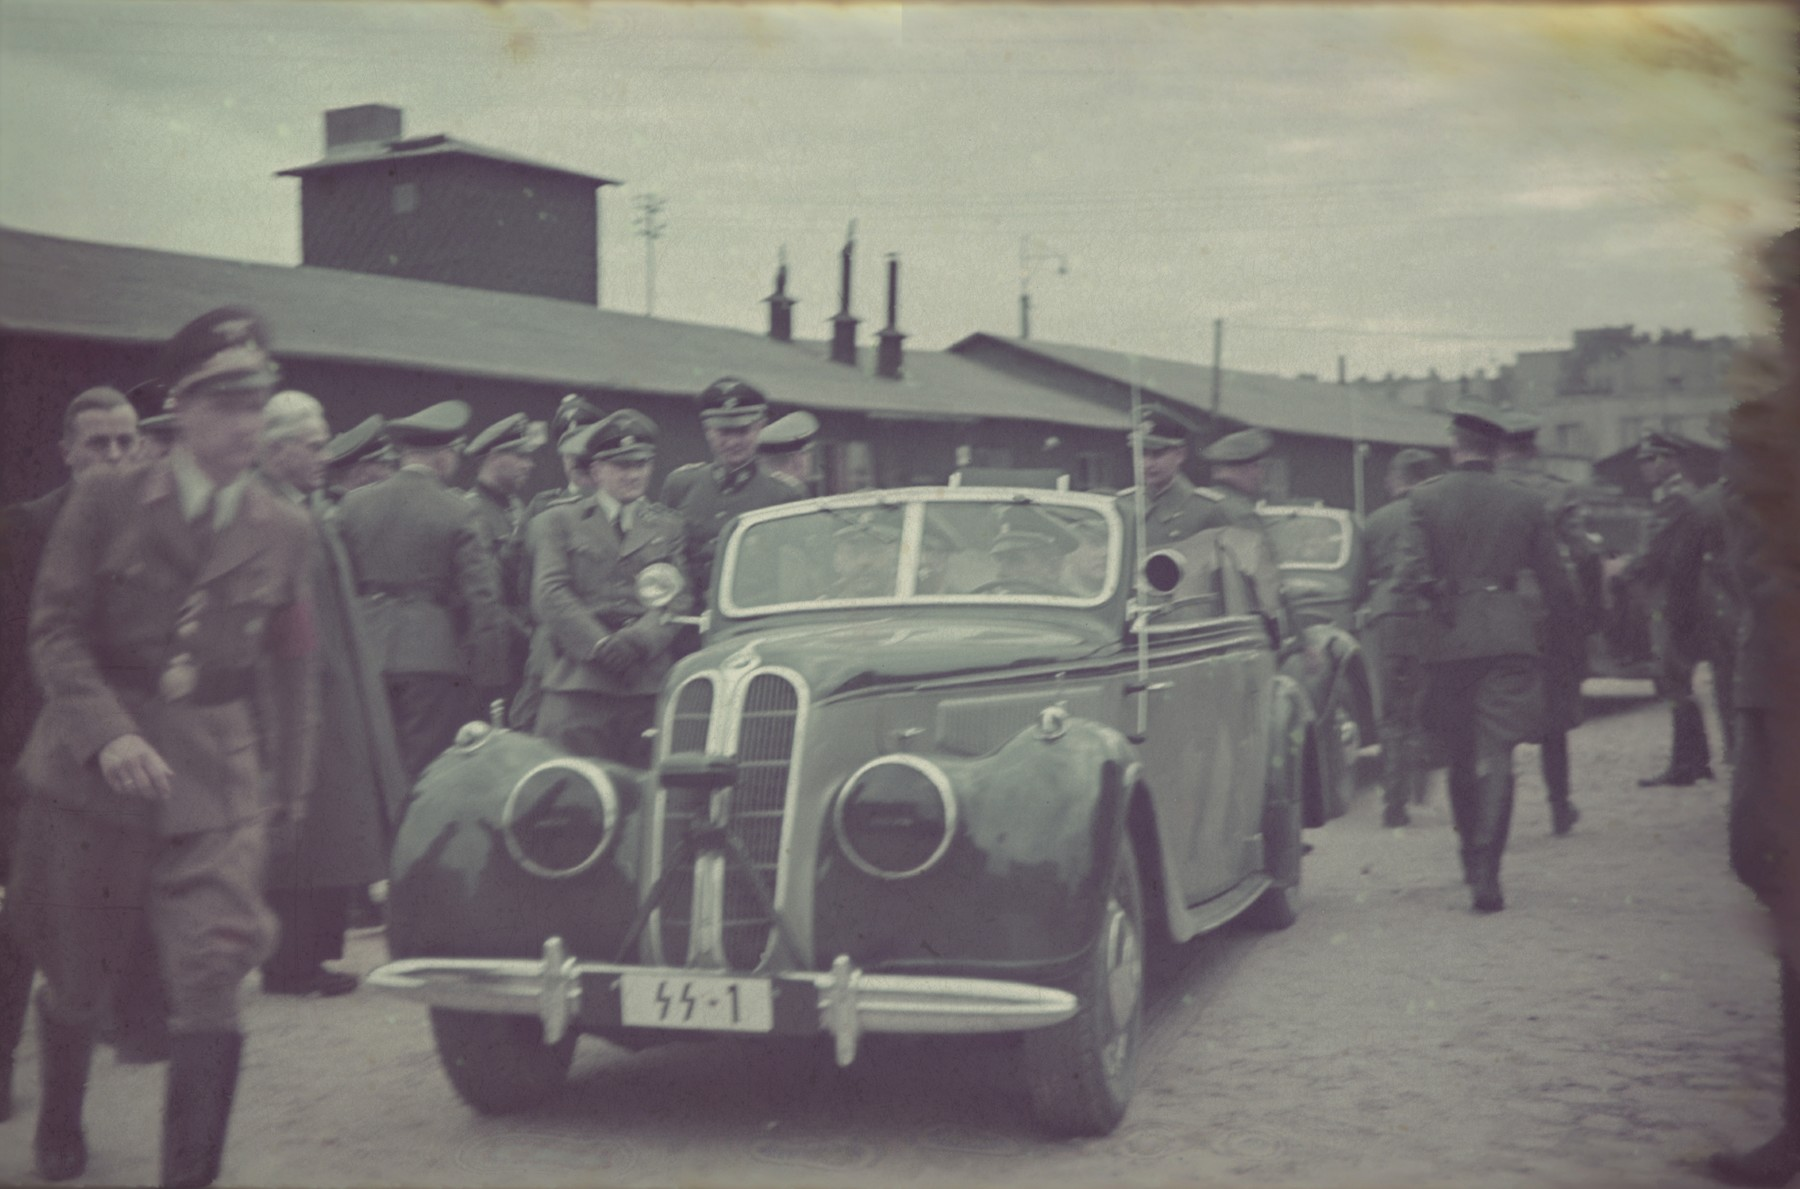 An official visit of Heinrich Himmler in the Lodz Ghetto. Mordechai Chaim Rumkowski, head of the Jewish council, greets the Nazi officials. Standing to the right of the car is Karl Wolff.